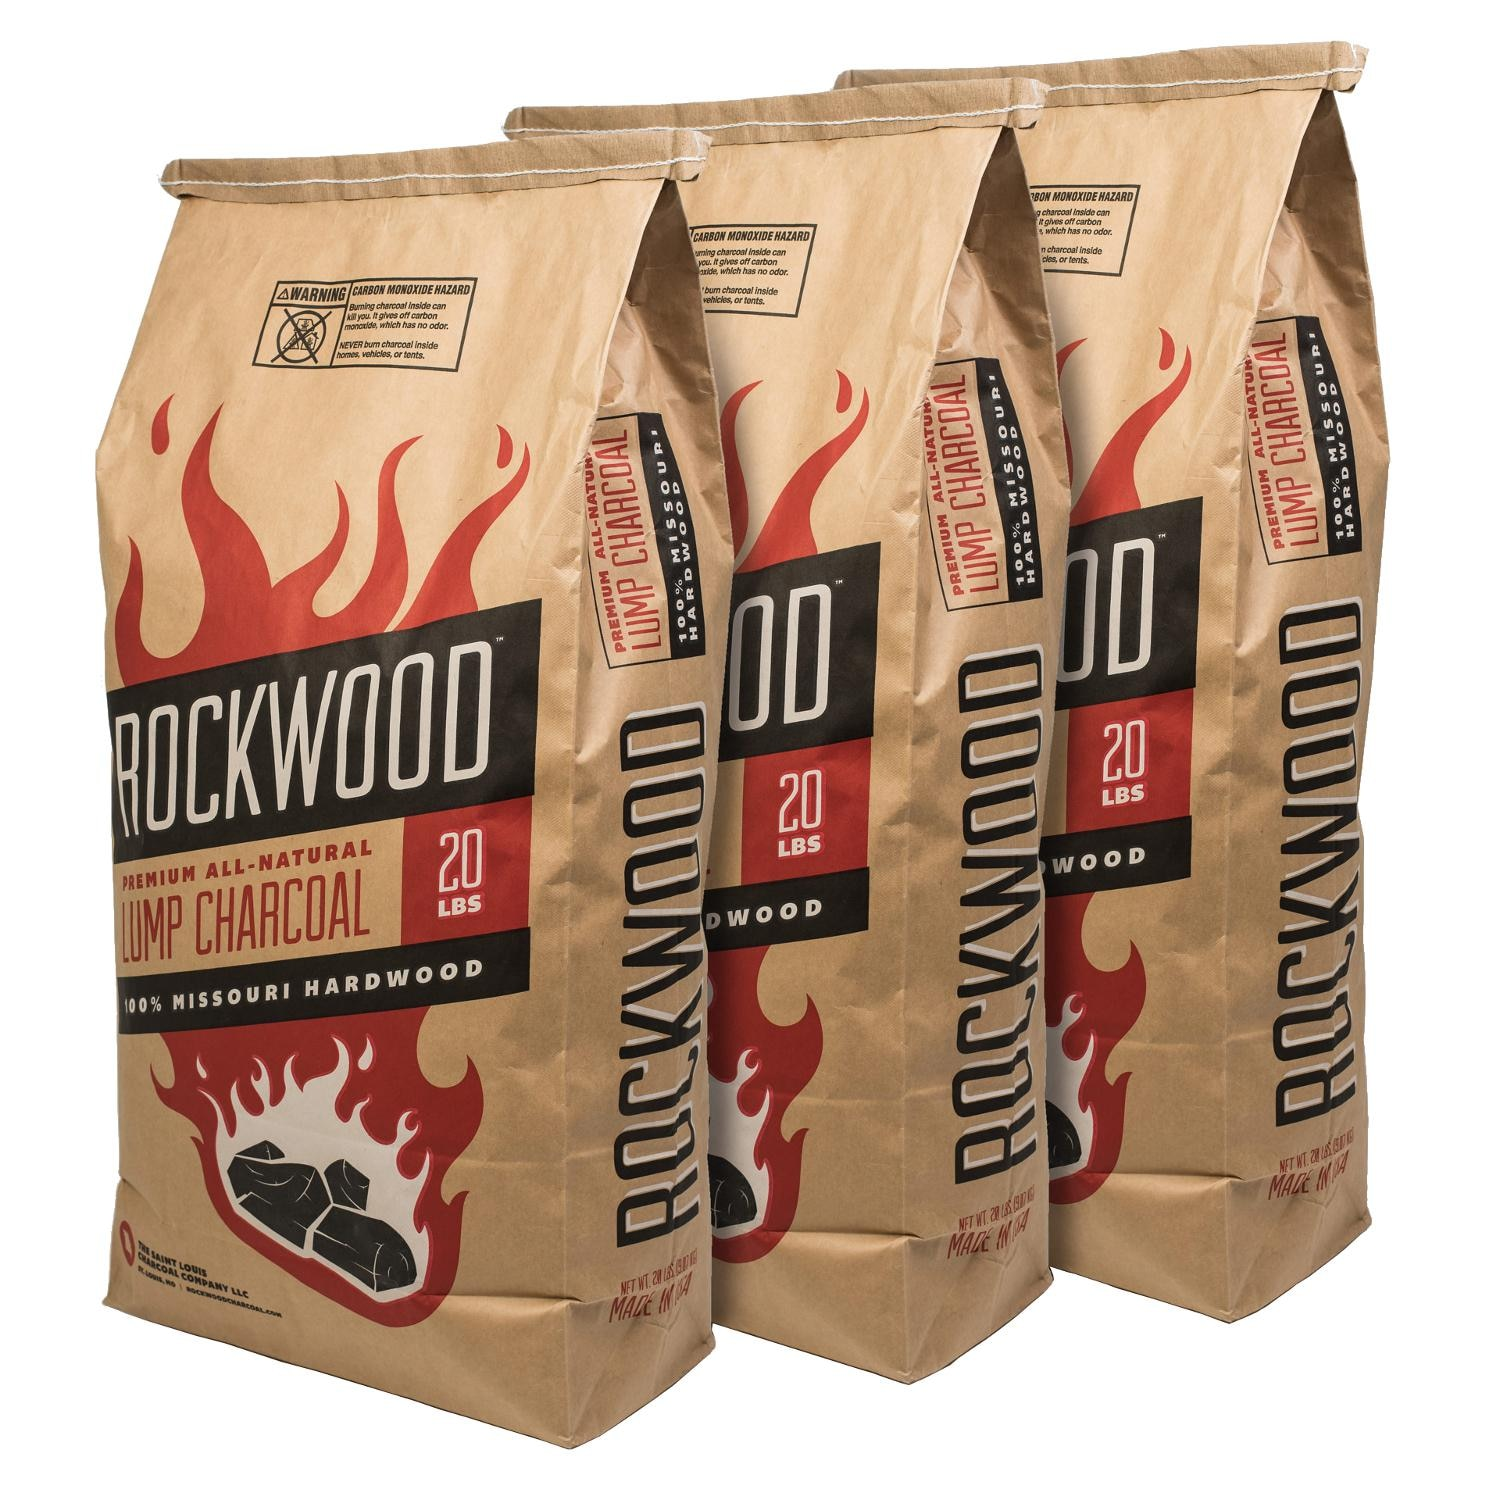 Rockwood  All-Natural Hardwood Lump Charcoal - 20 Lbs - 3 Pack - RW20 (3)